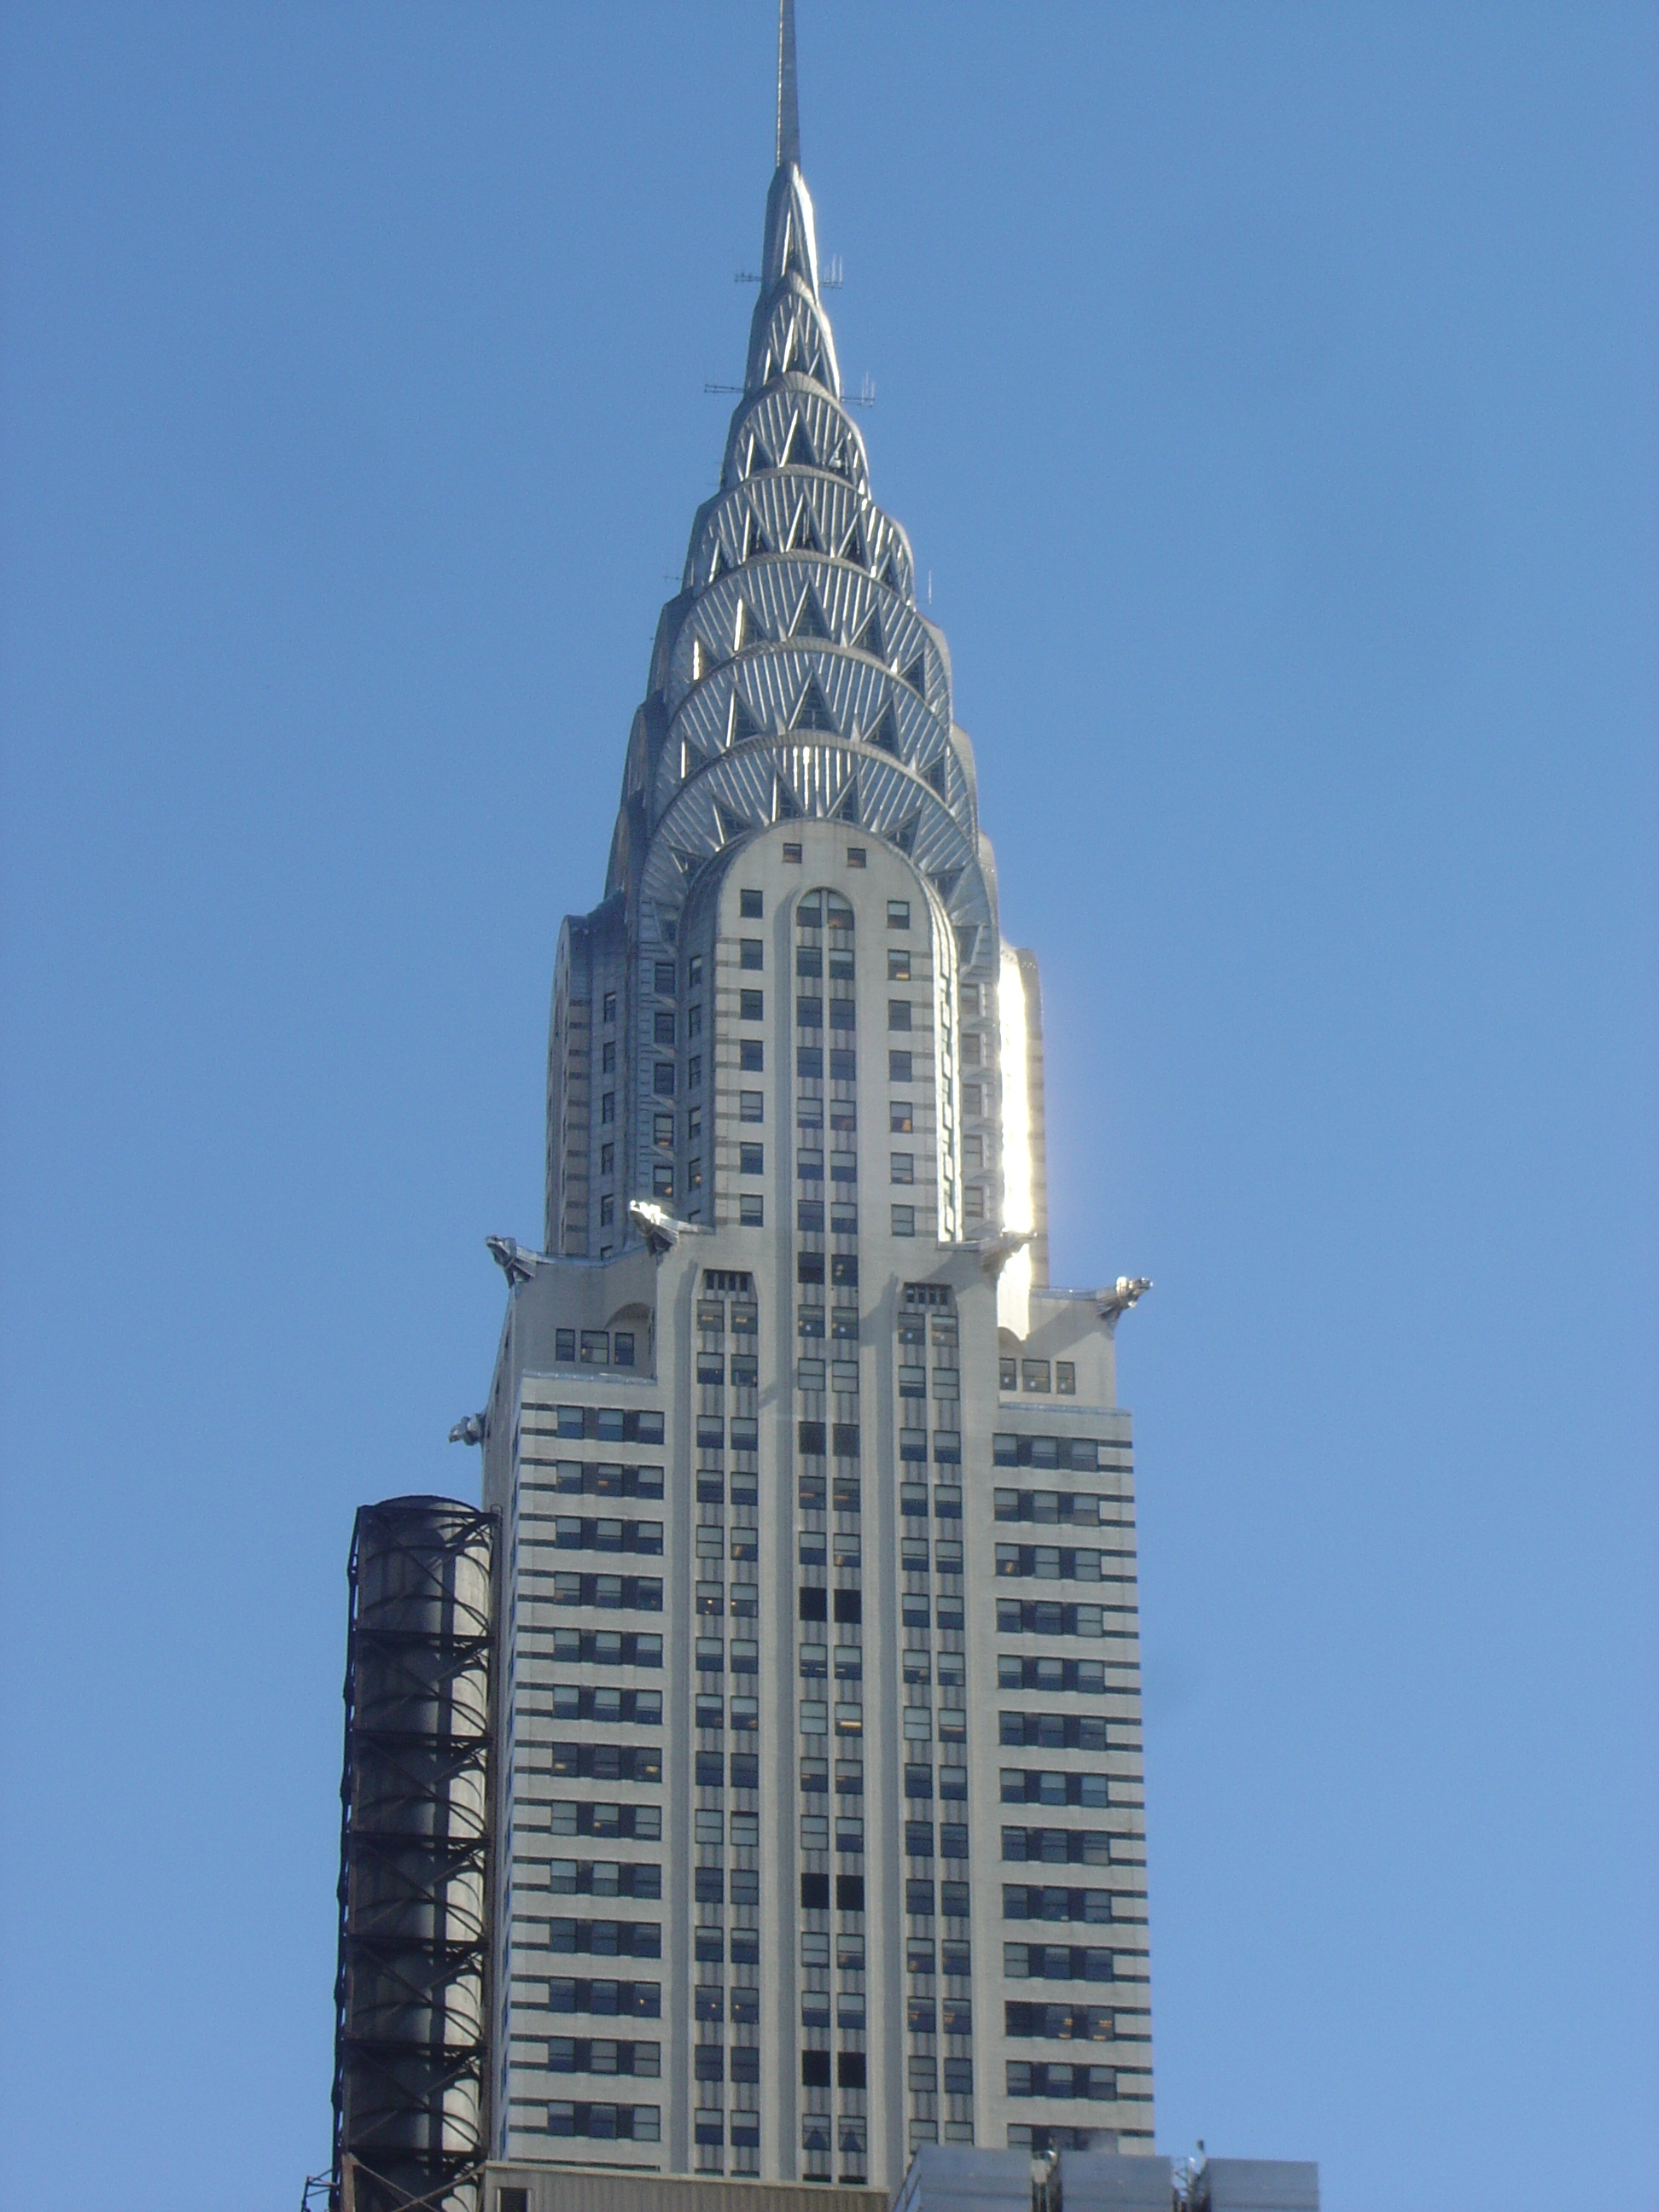 What is unique about the design of the chrysler building